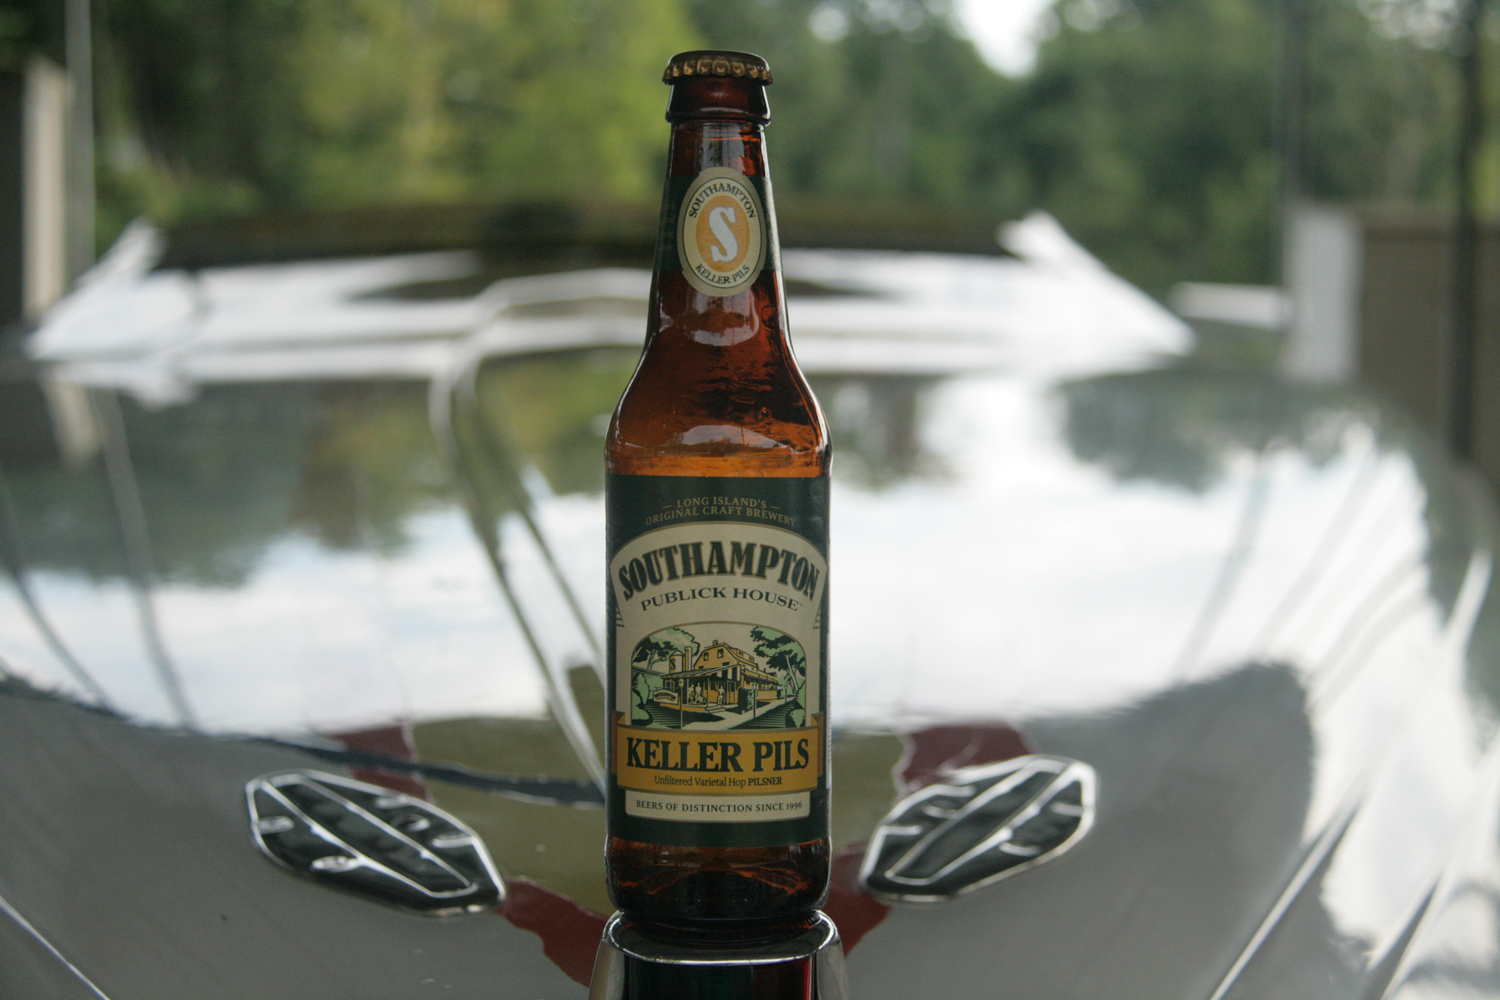 Summer requires Southampton Keller Pils New York beer.